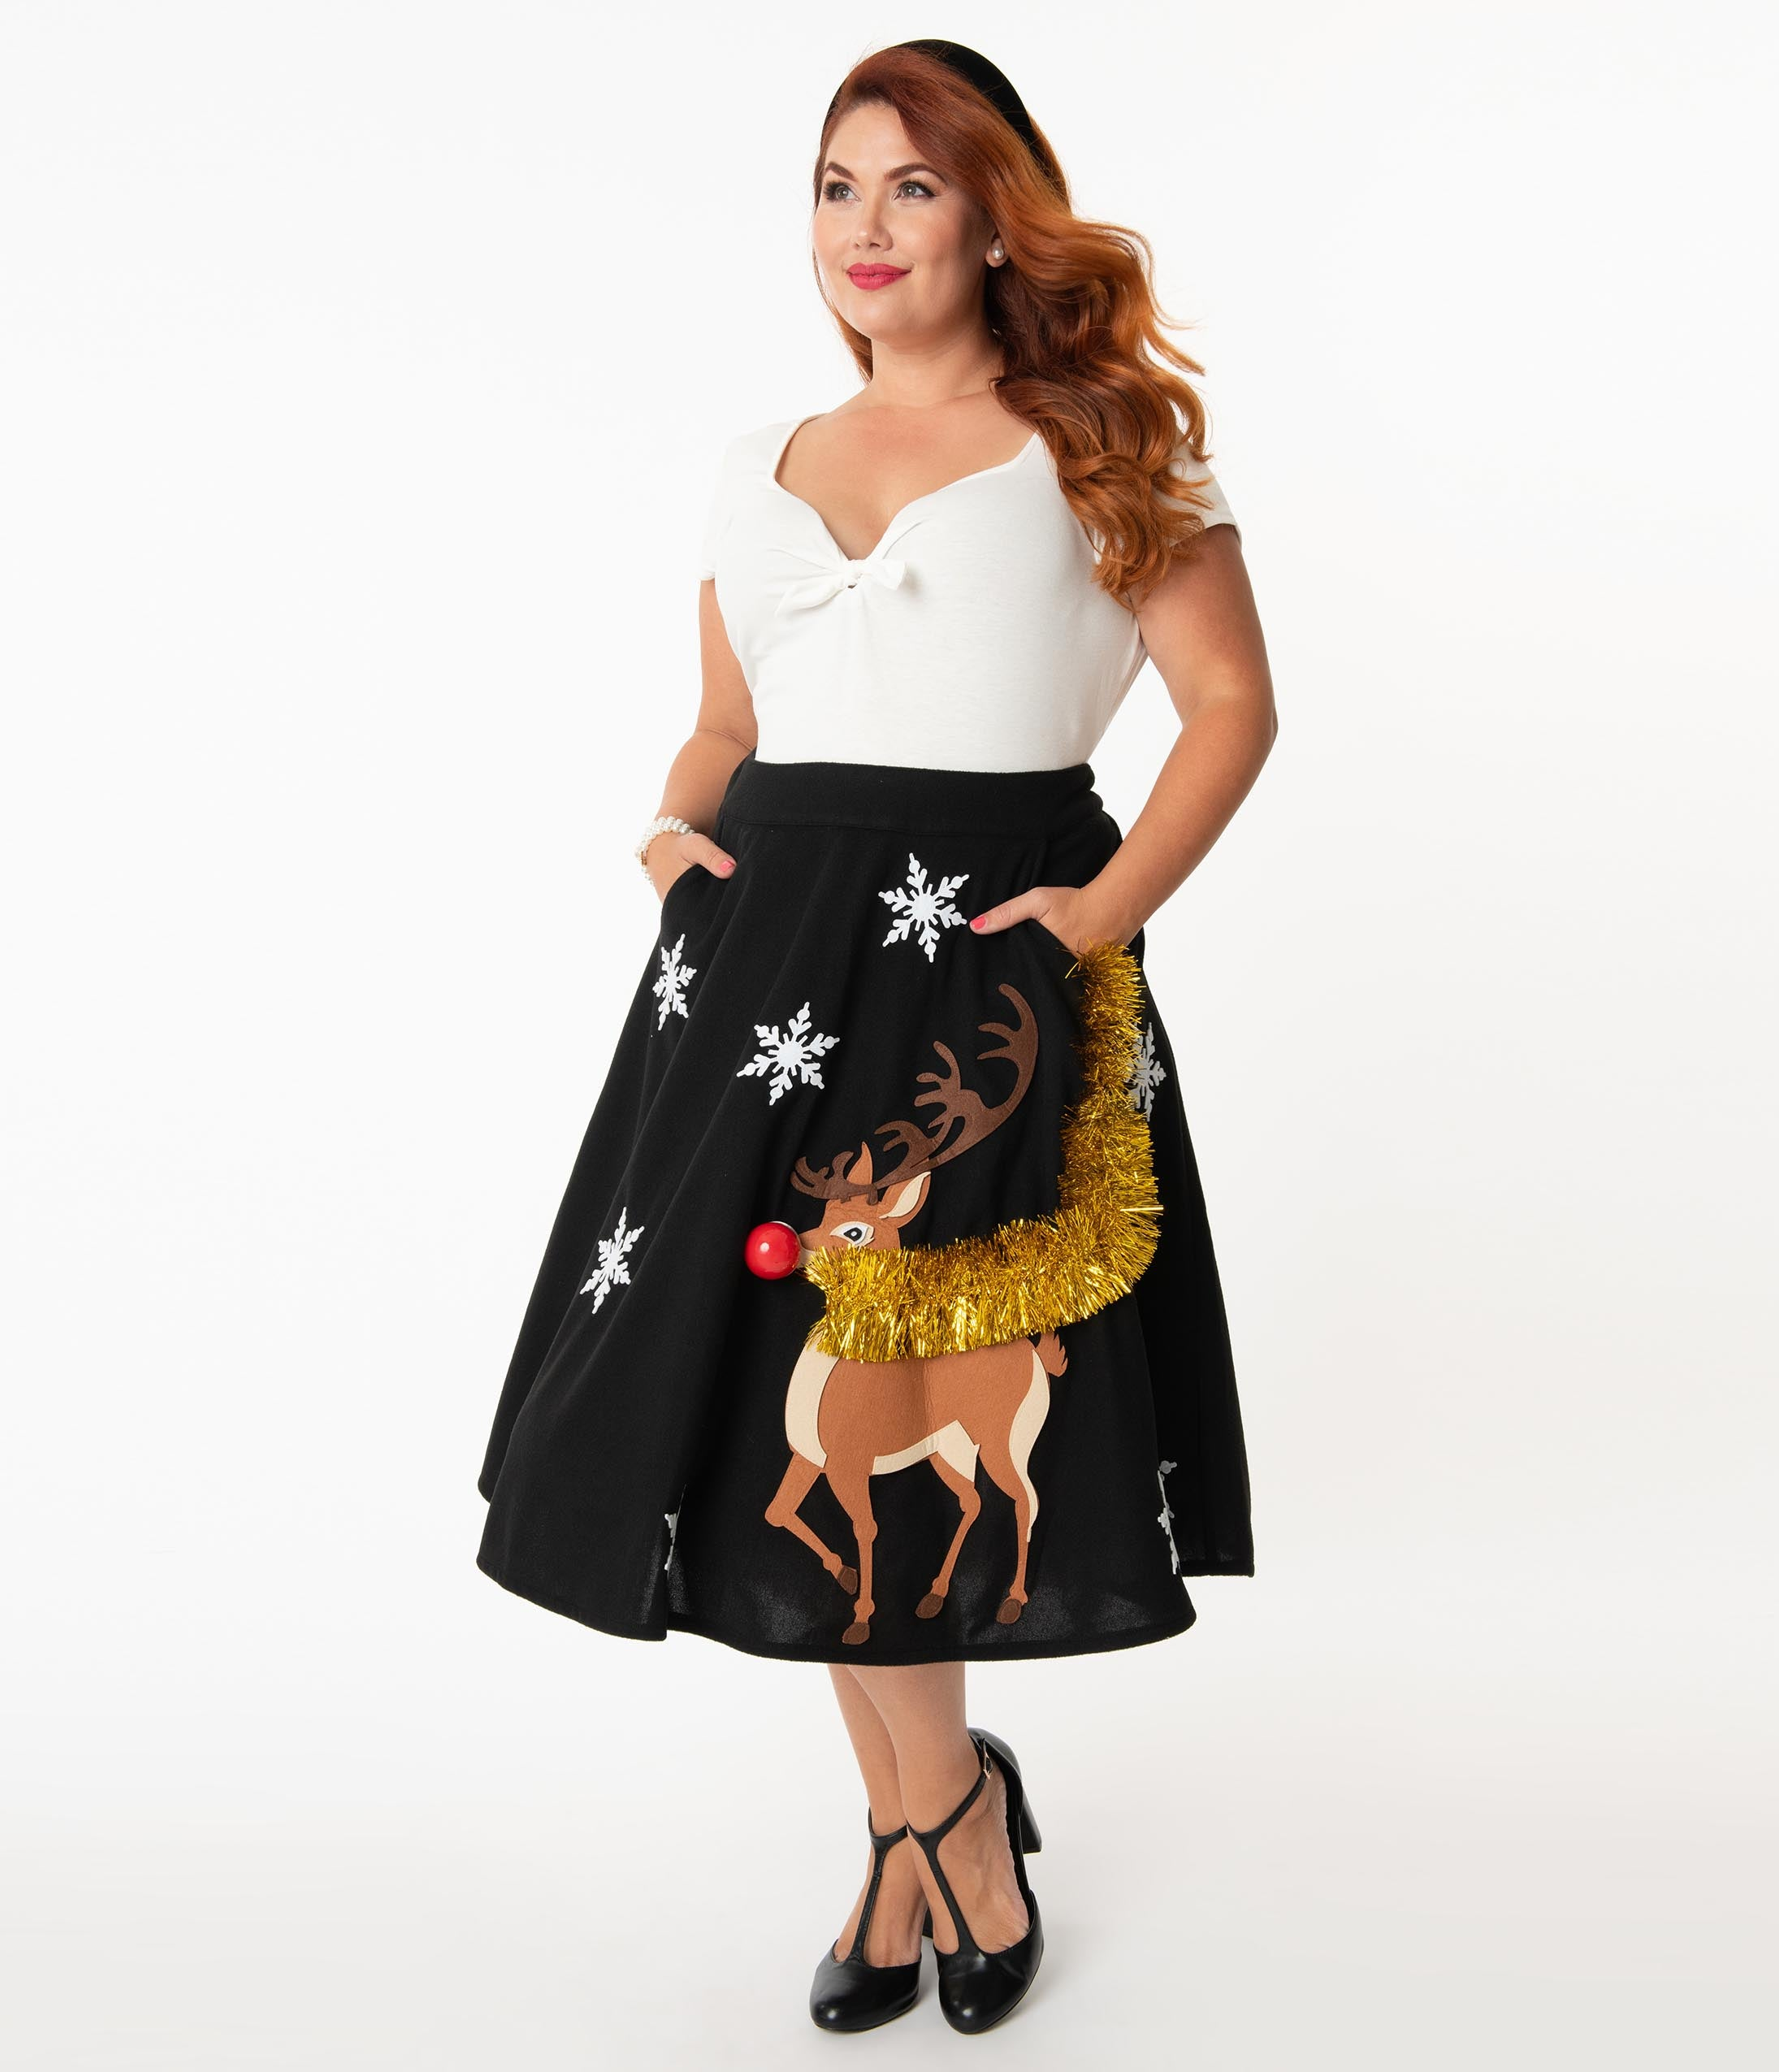 1950s Swing Skirt, Poodle Skirt, Pencil Skirts Unique Vintage Plus Size 1950S Black  Red Nose Reindeer Soda Shop Swing Skirt $78.00 AT vintagedancer.com